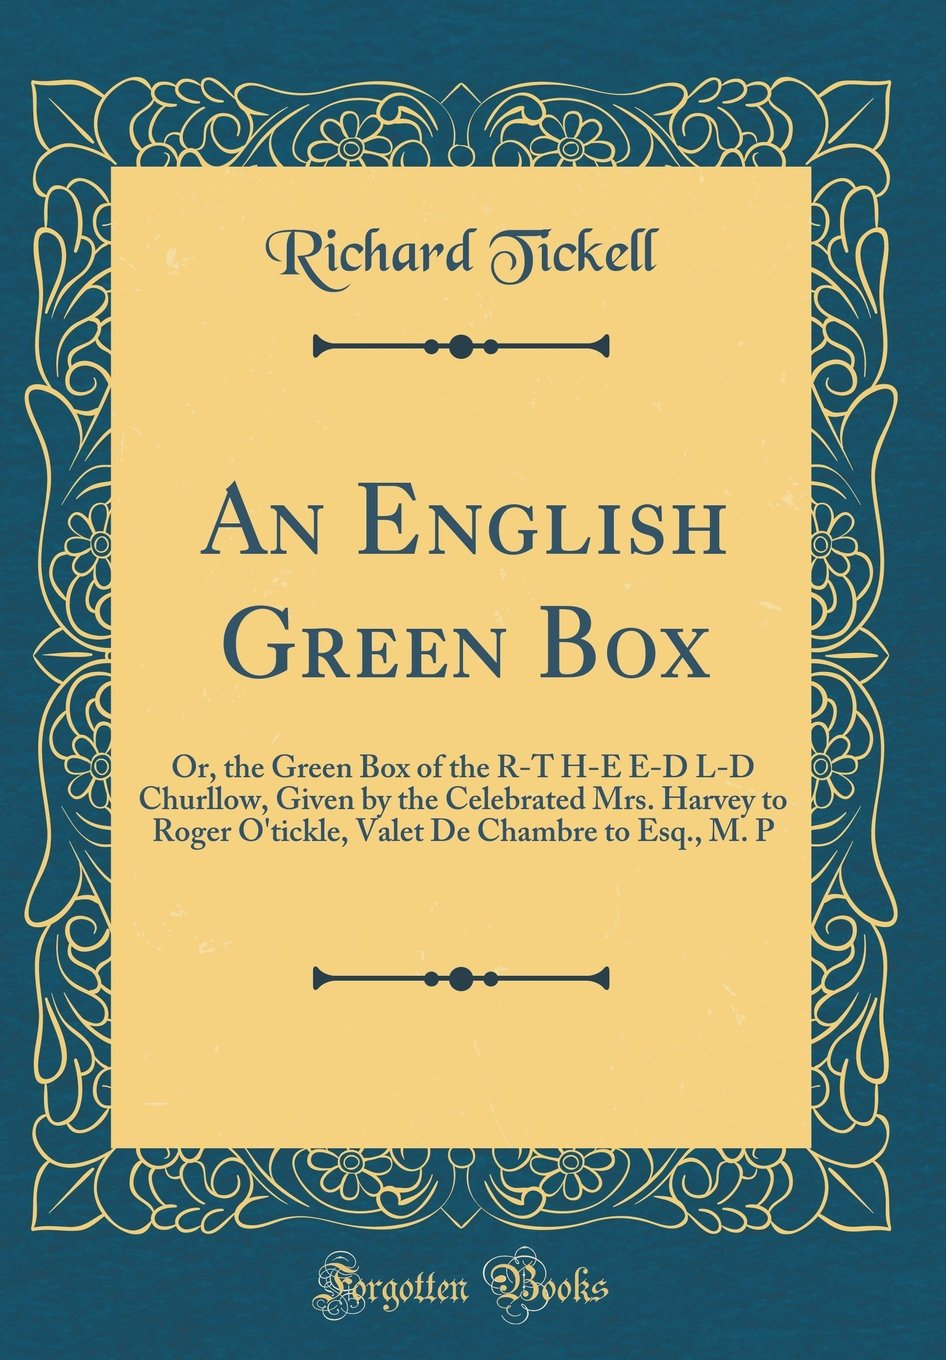 Download An English Green Box: Or, the Green Box of the R-T H-E E-D L-D Churllow, Given by the Celebrated Mrs. Harvey to Roger O'tickle, Valet De Chambre to Esq., M. P (Classic Reprint) PDF